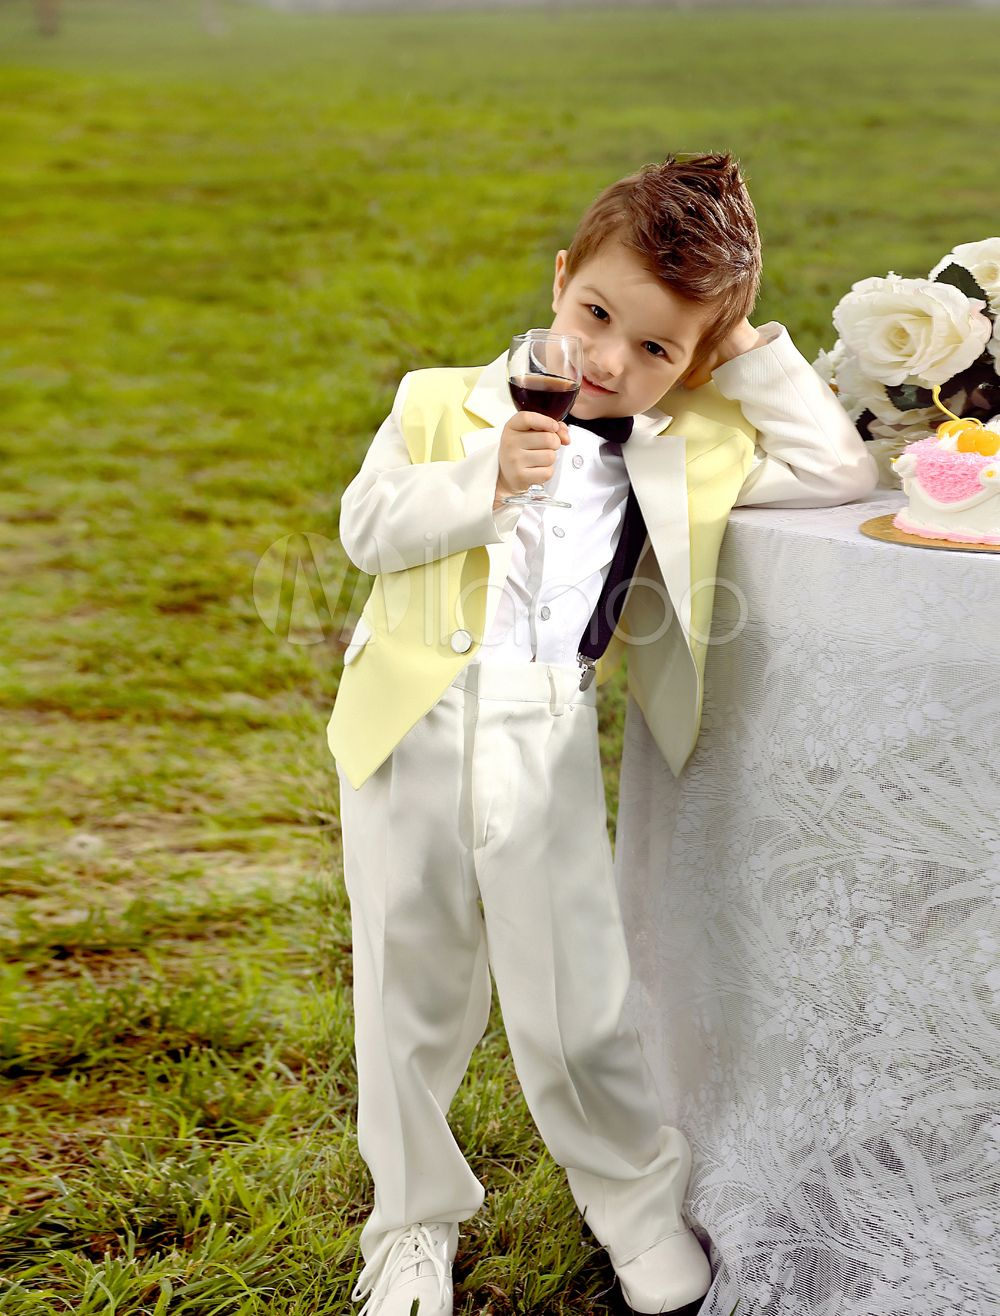 6e592c5a9231 Baby Boy Suit Set Kids Wedding Tuxedo Yellow Jacket Pants Shirts Bow Tie 4  Pcs Ring